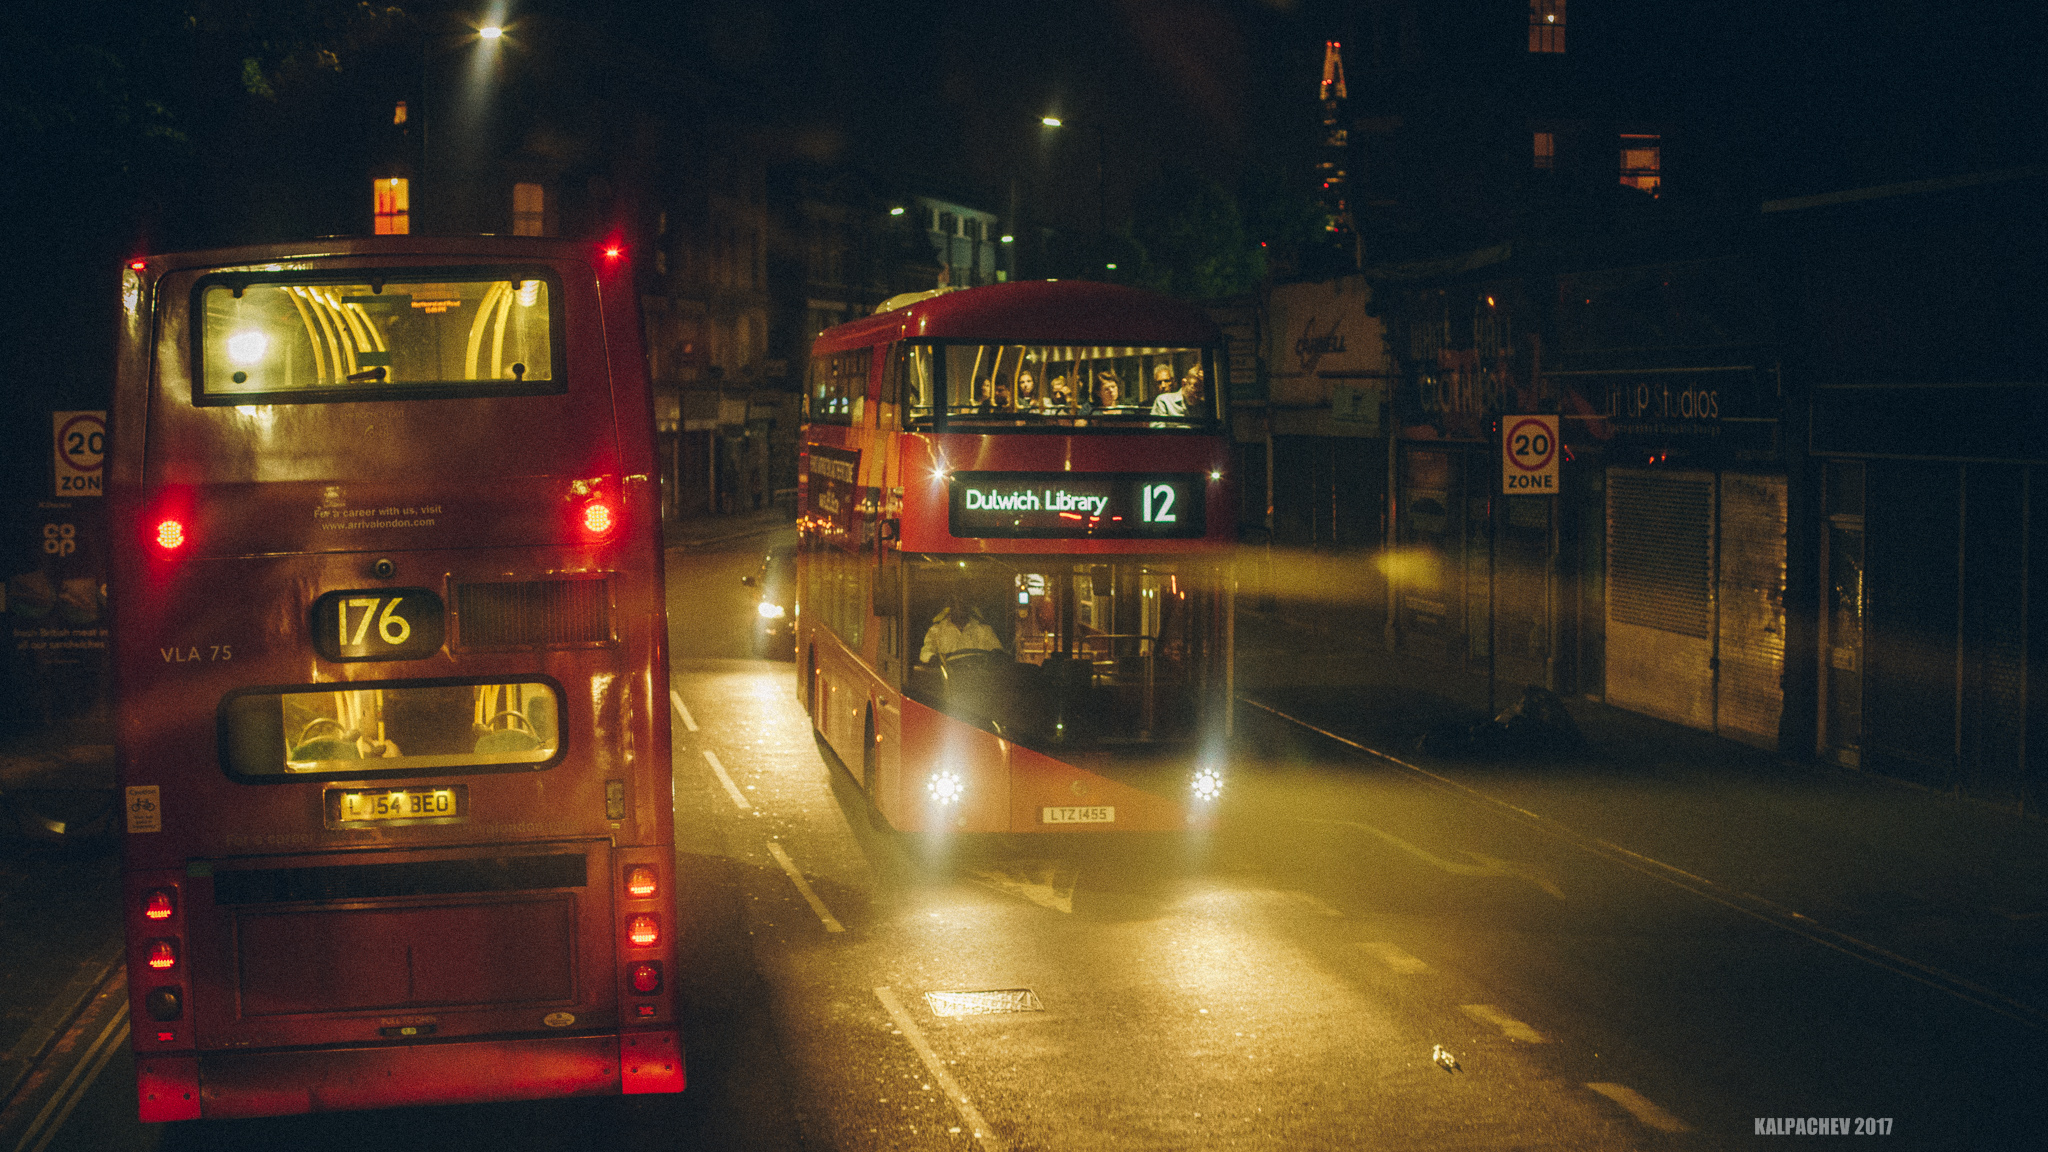 Late night bus